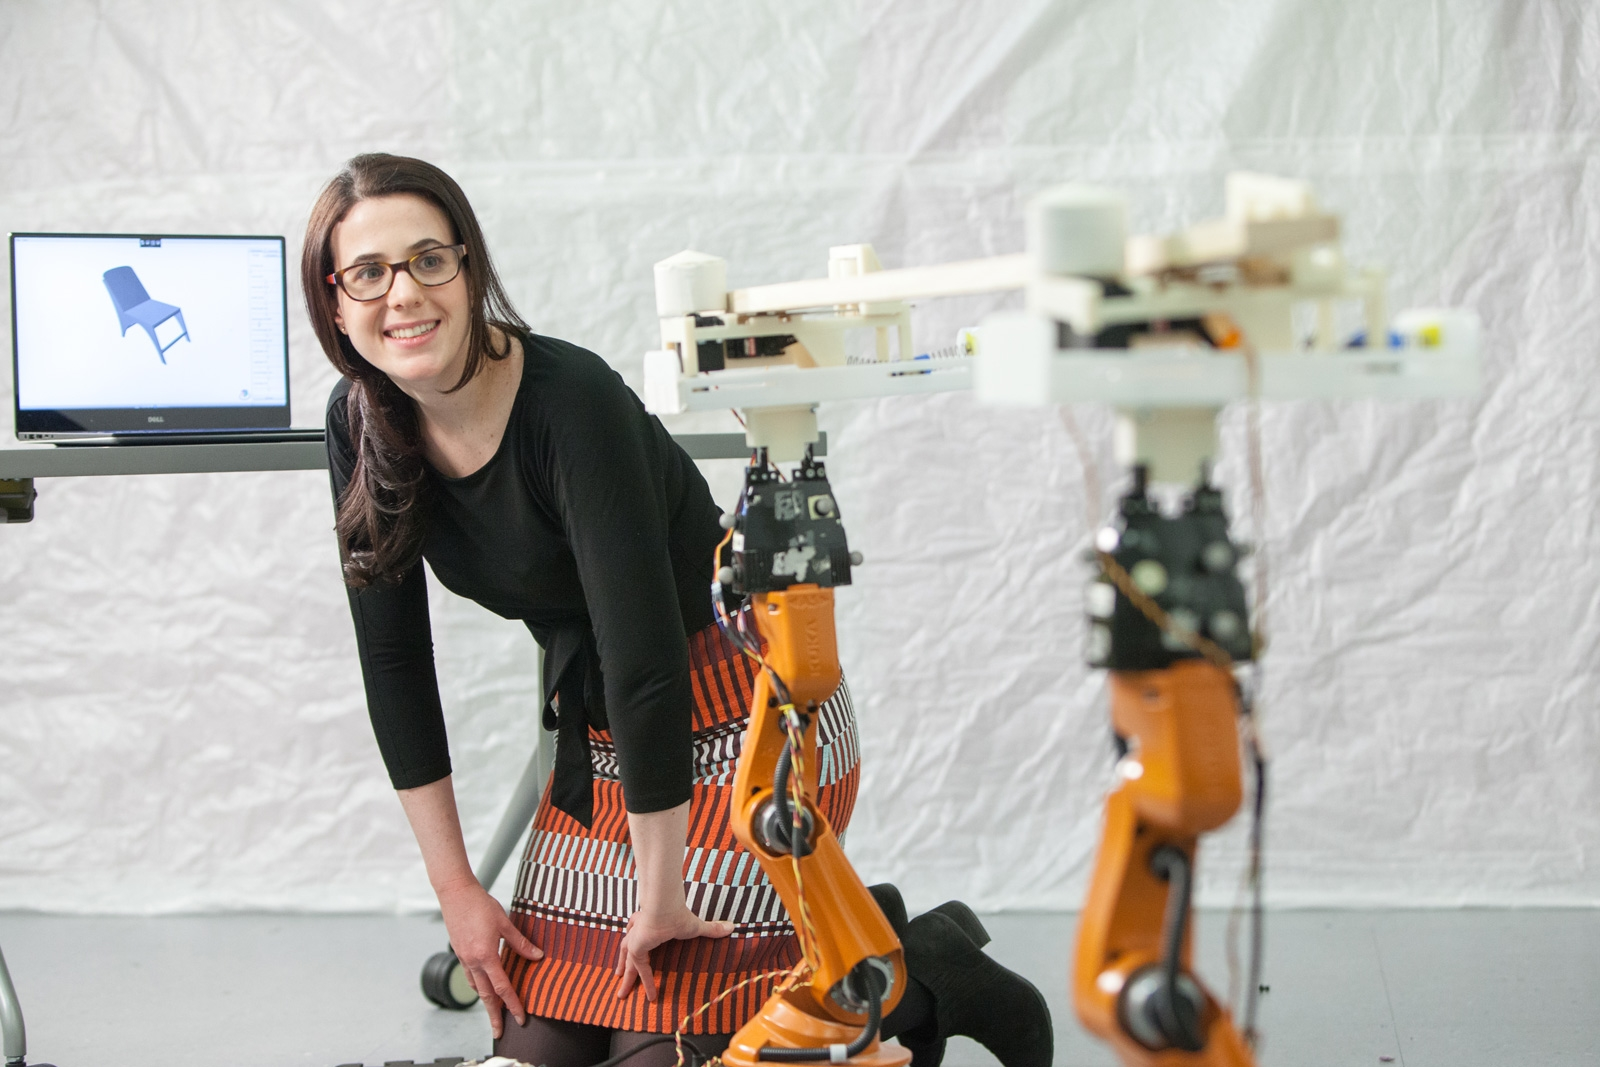 MIT's robotic carpenters take the hassle out of custom furniture | DeviceDaily.com